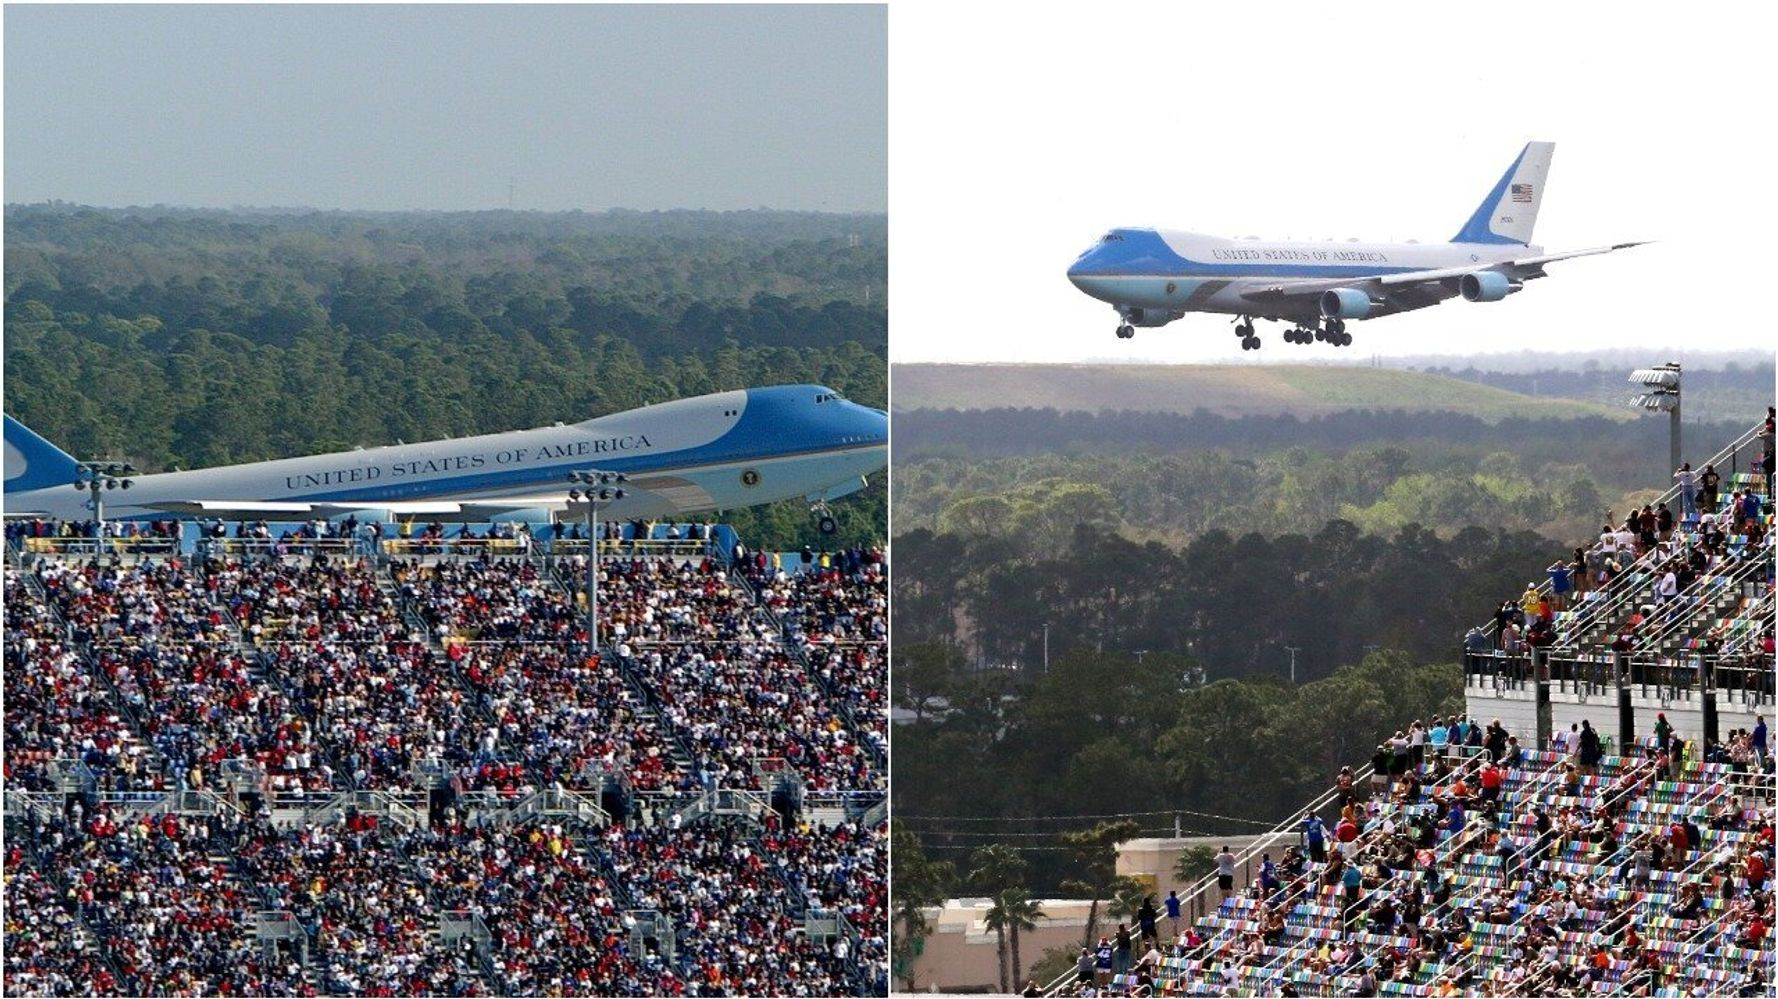 Trump Campaign Manager Tweets Photo Of Big Crowd Near Air Force One -- From 2004